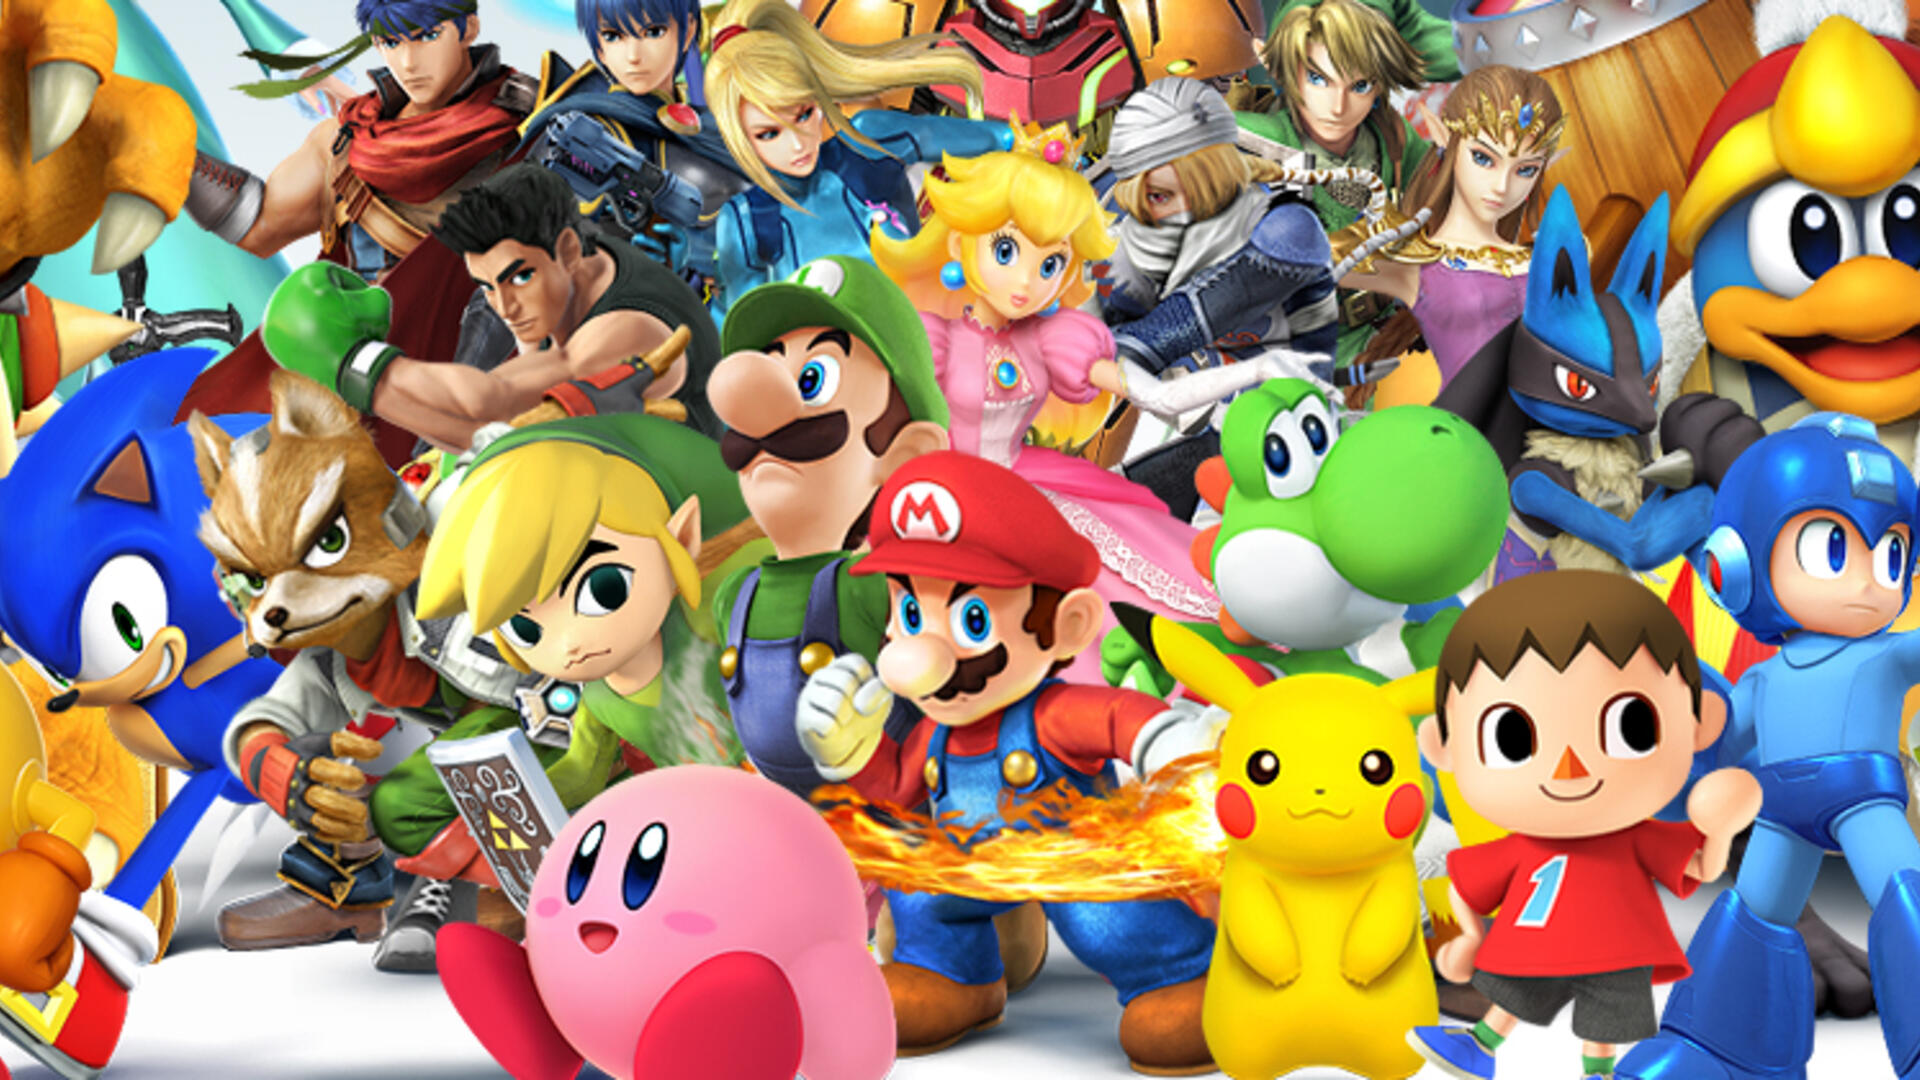 I Played Eight-Player Super Smash Bros. on Wii U (And Won!)